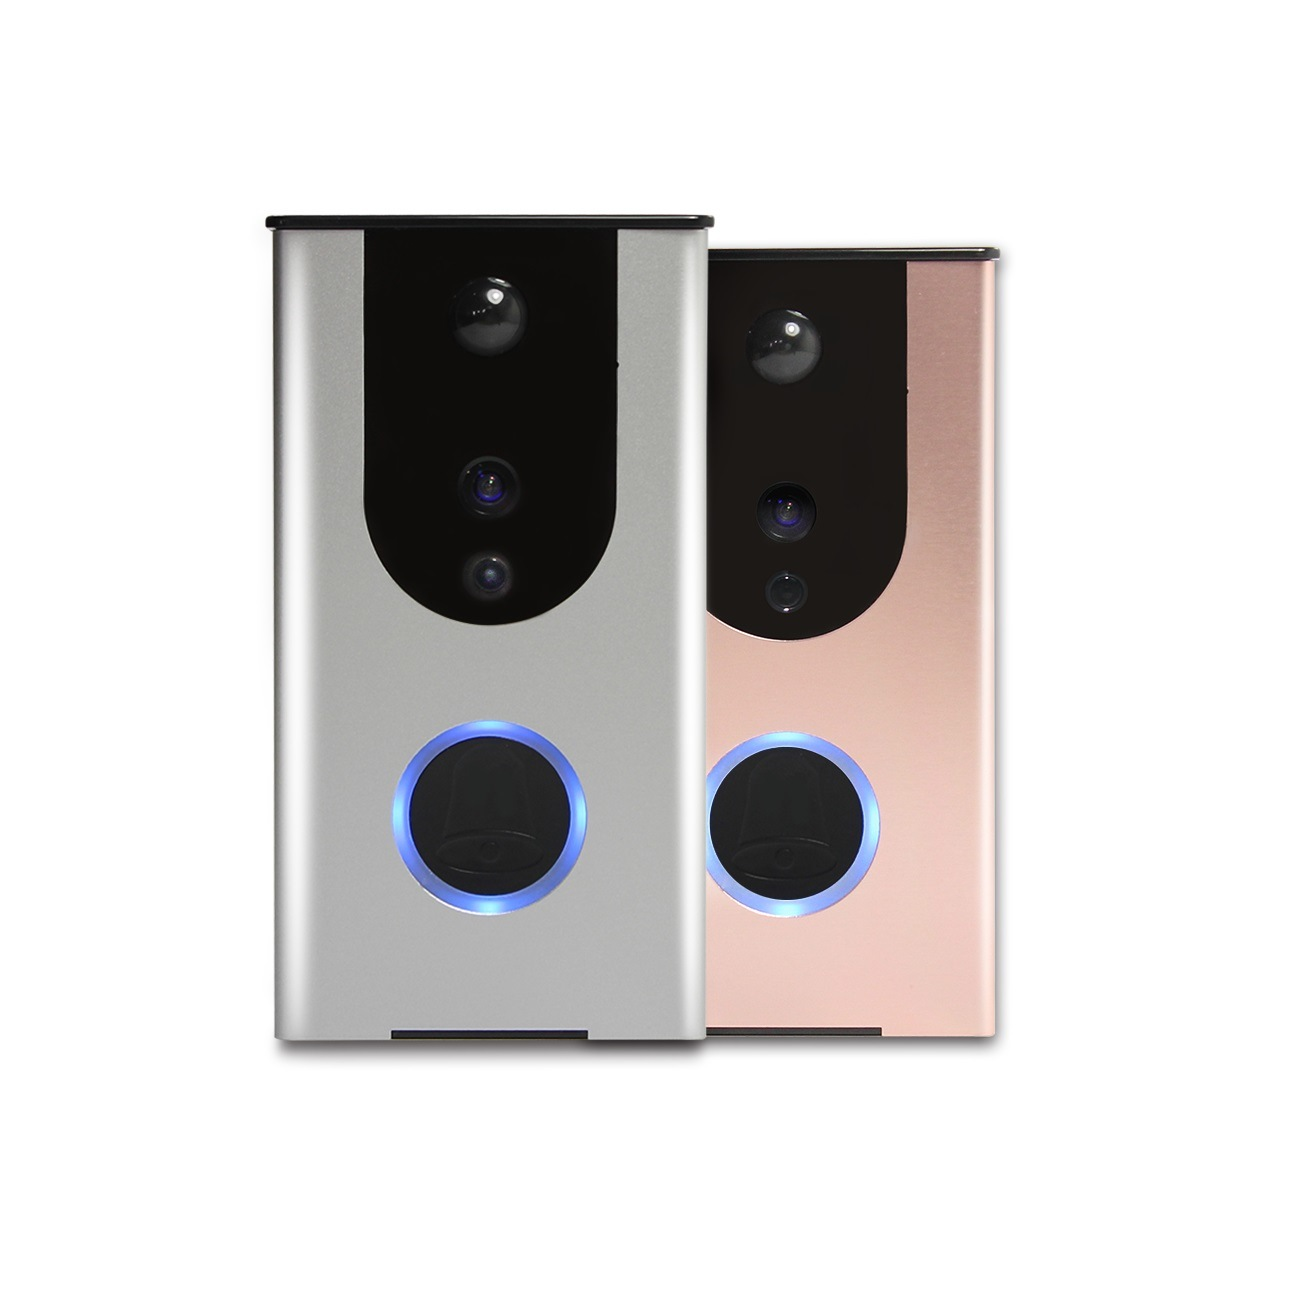 Wireless Door Intercom with Camera Waterproof Video Doorbell